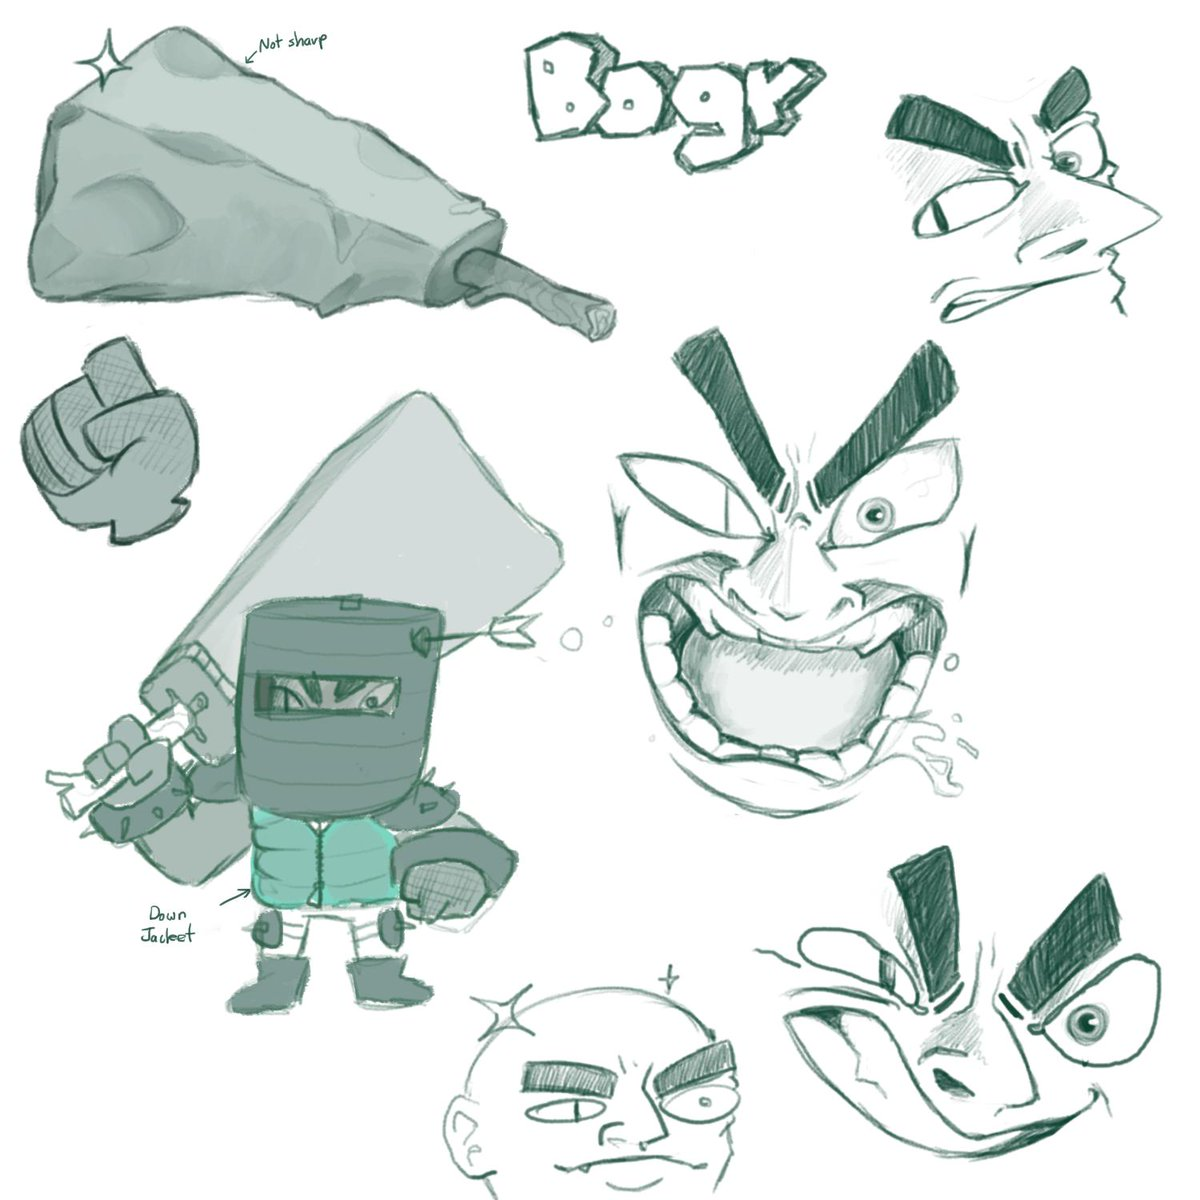 Meet Bogr, my outlet for wanting to draw really over the top expressions. If yall like him there might even be a full painting of this angery gremlin man #CharacterDesign #Bogr #Design #Art